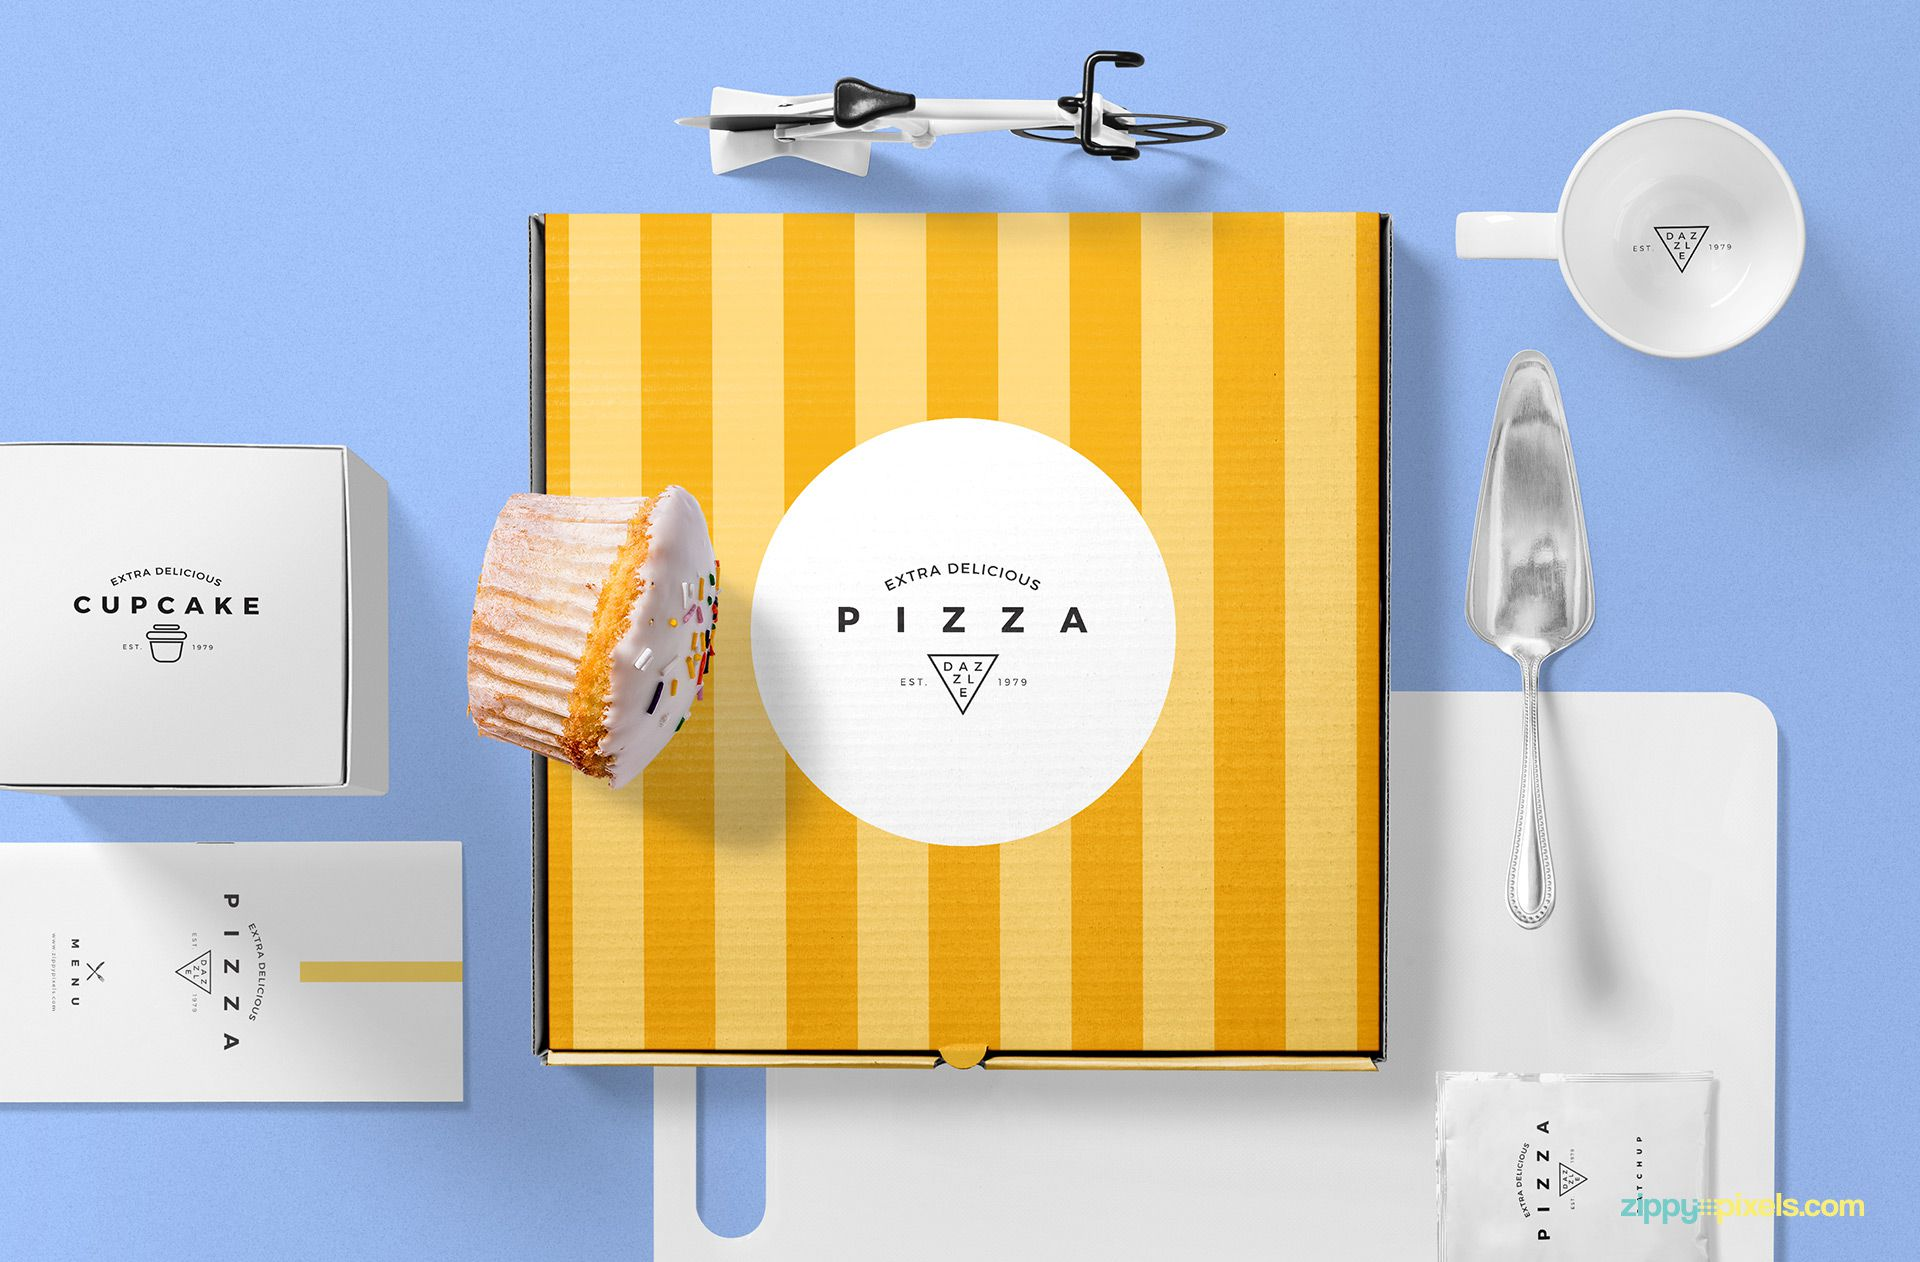 Pizza packaging mockup free PSD.